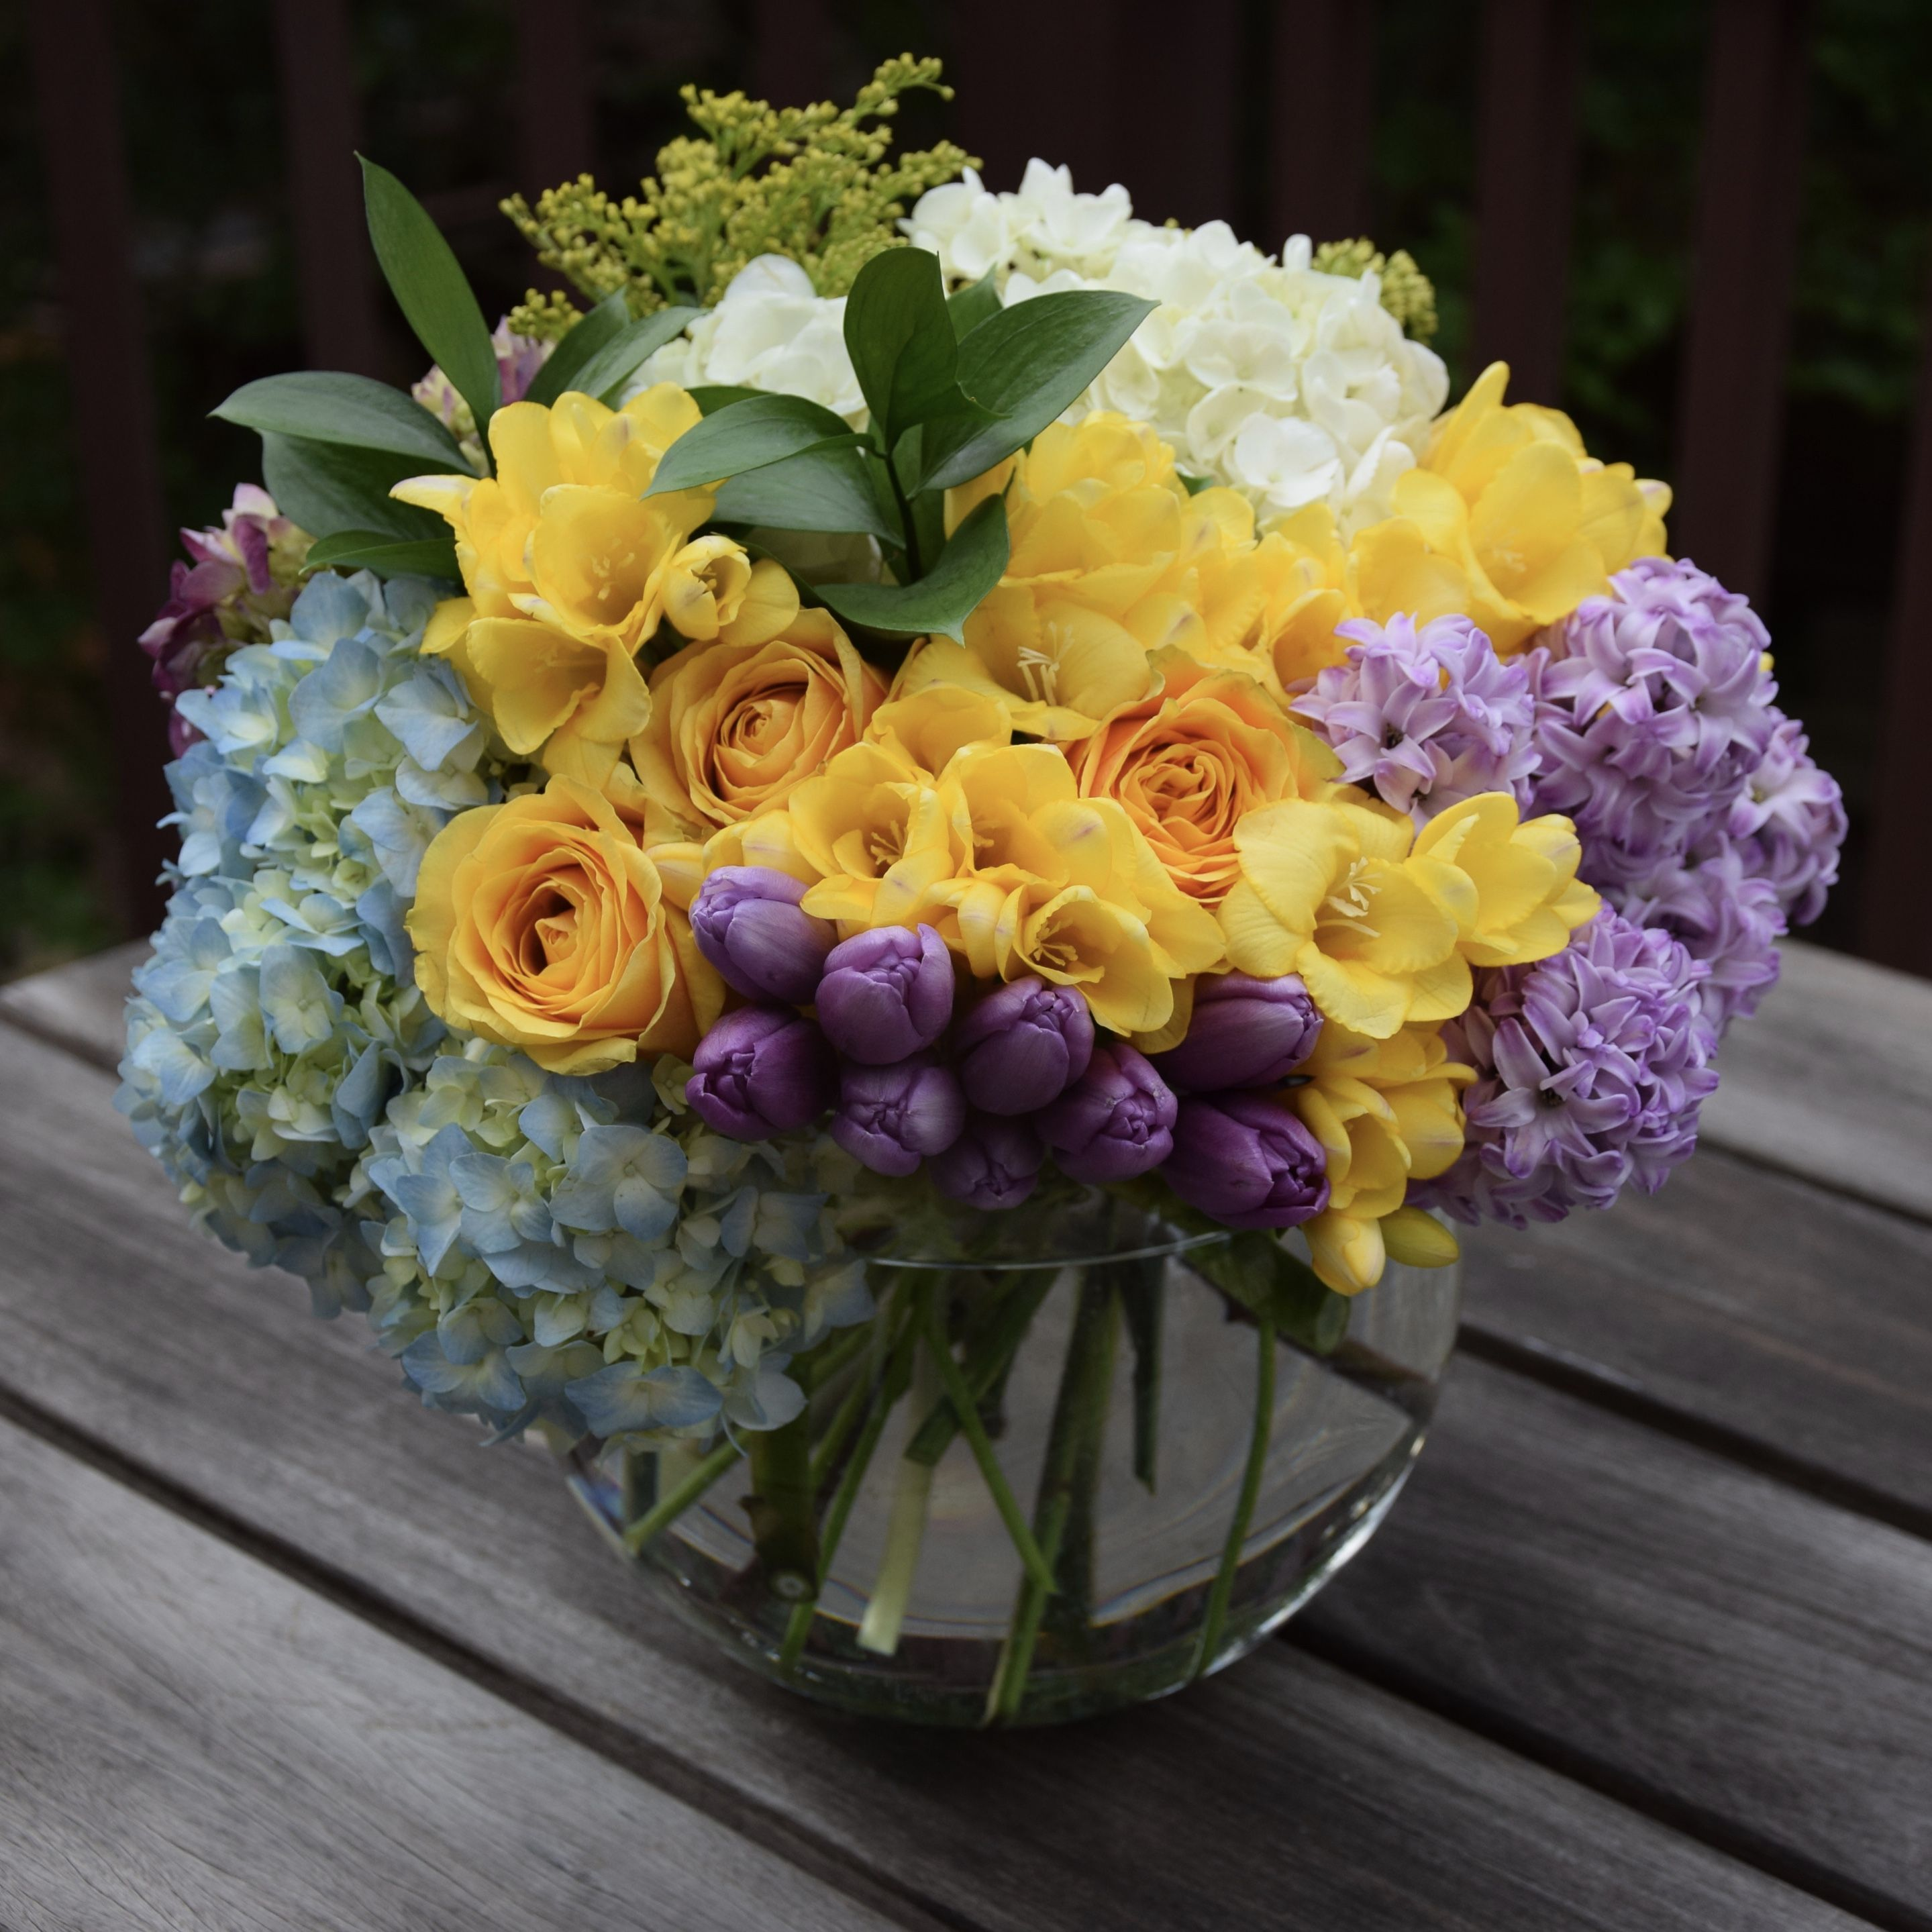 Teachers Appreciation Flower Arrangement With Yellow Roses And